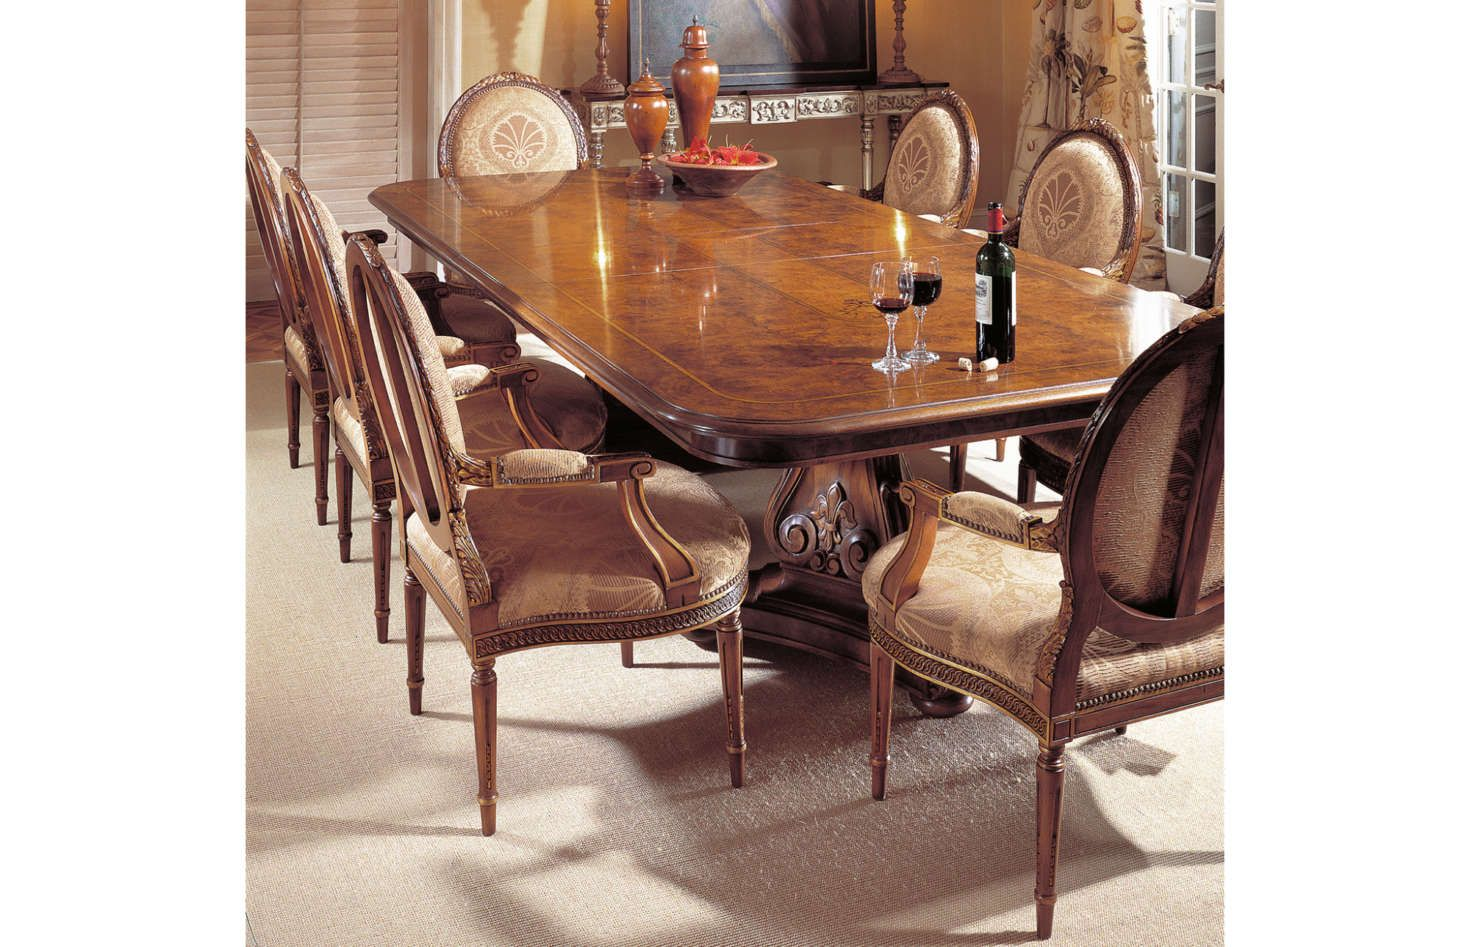 Regency Dining Table French Regence One Of The Most Elaborate And Detailed Tables Made By Karges It Combines Olive As Dining Table Regency Dining Table Dining